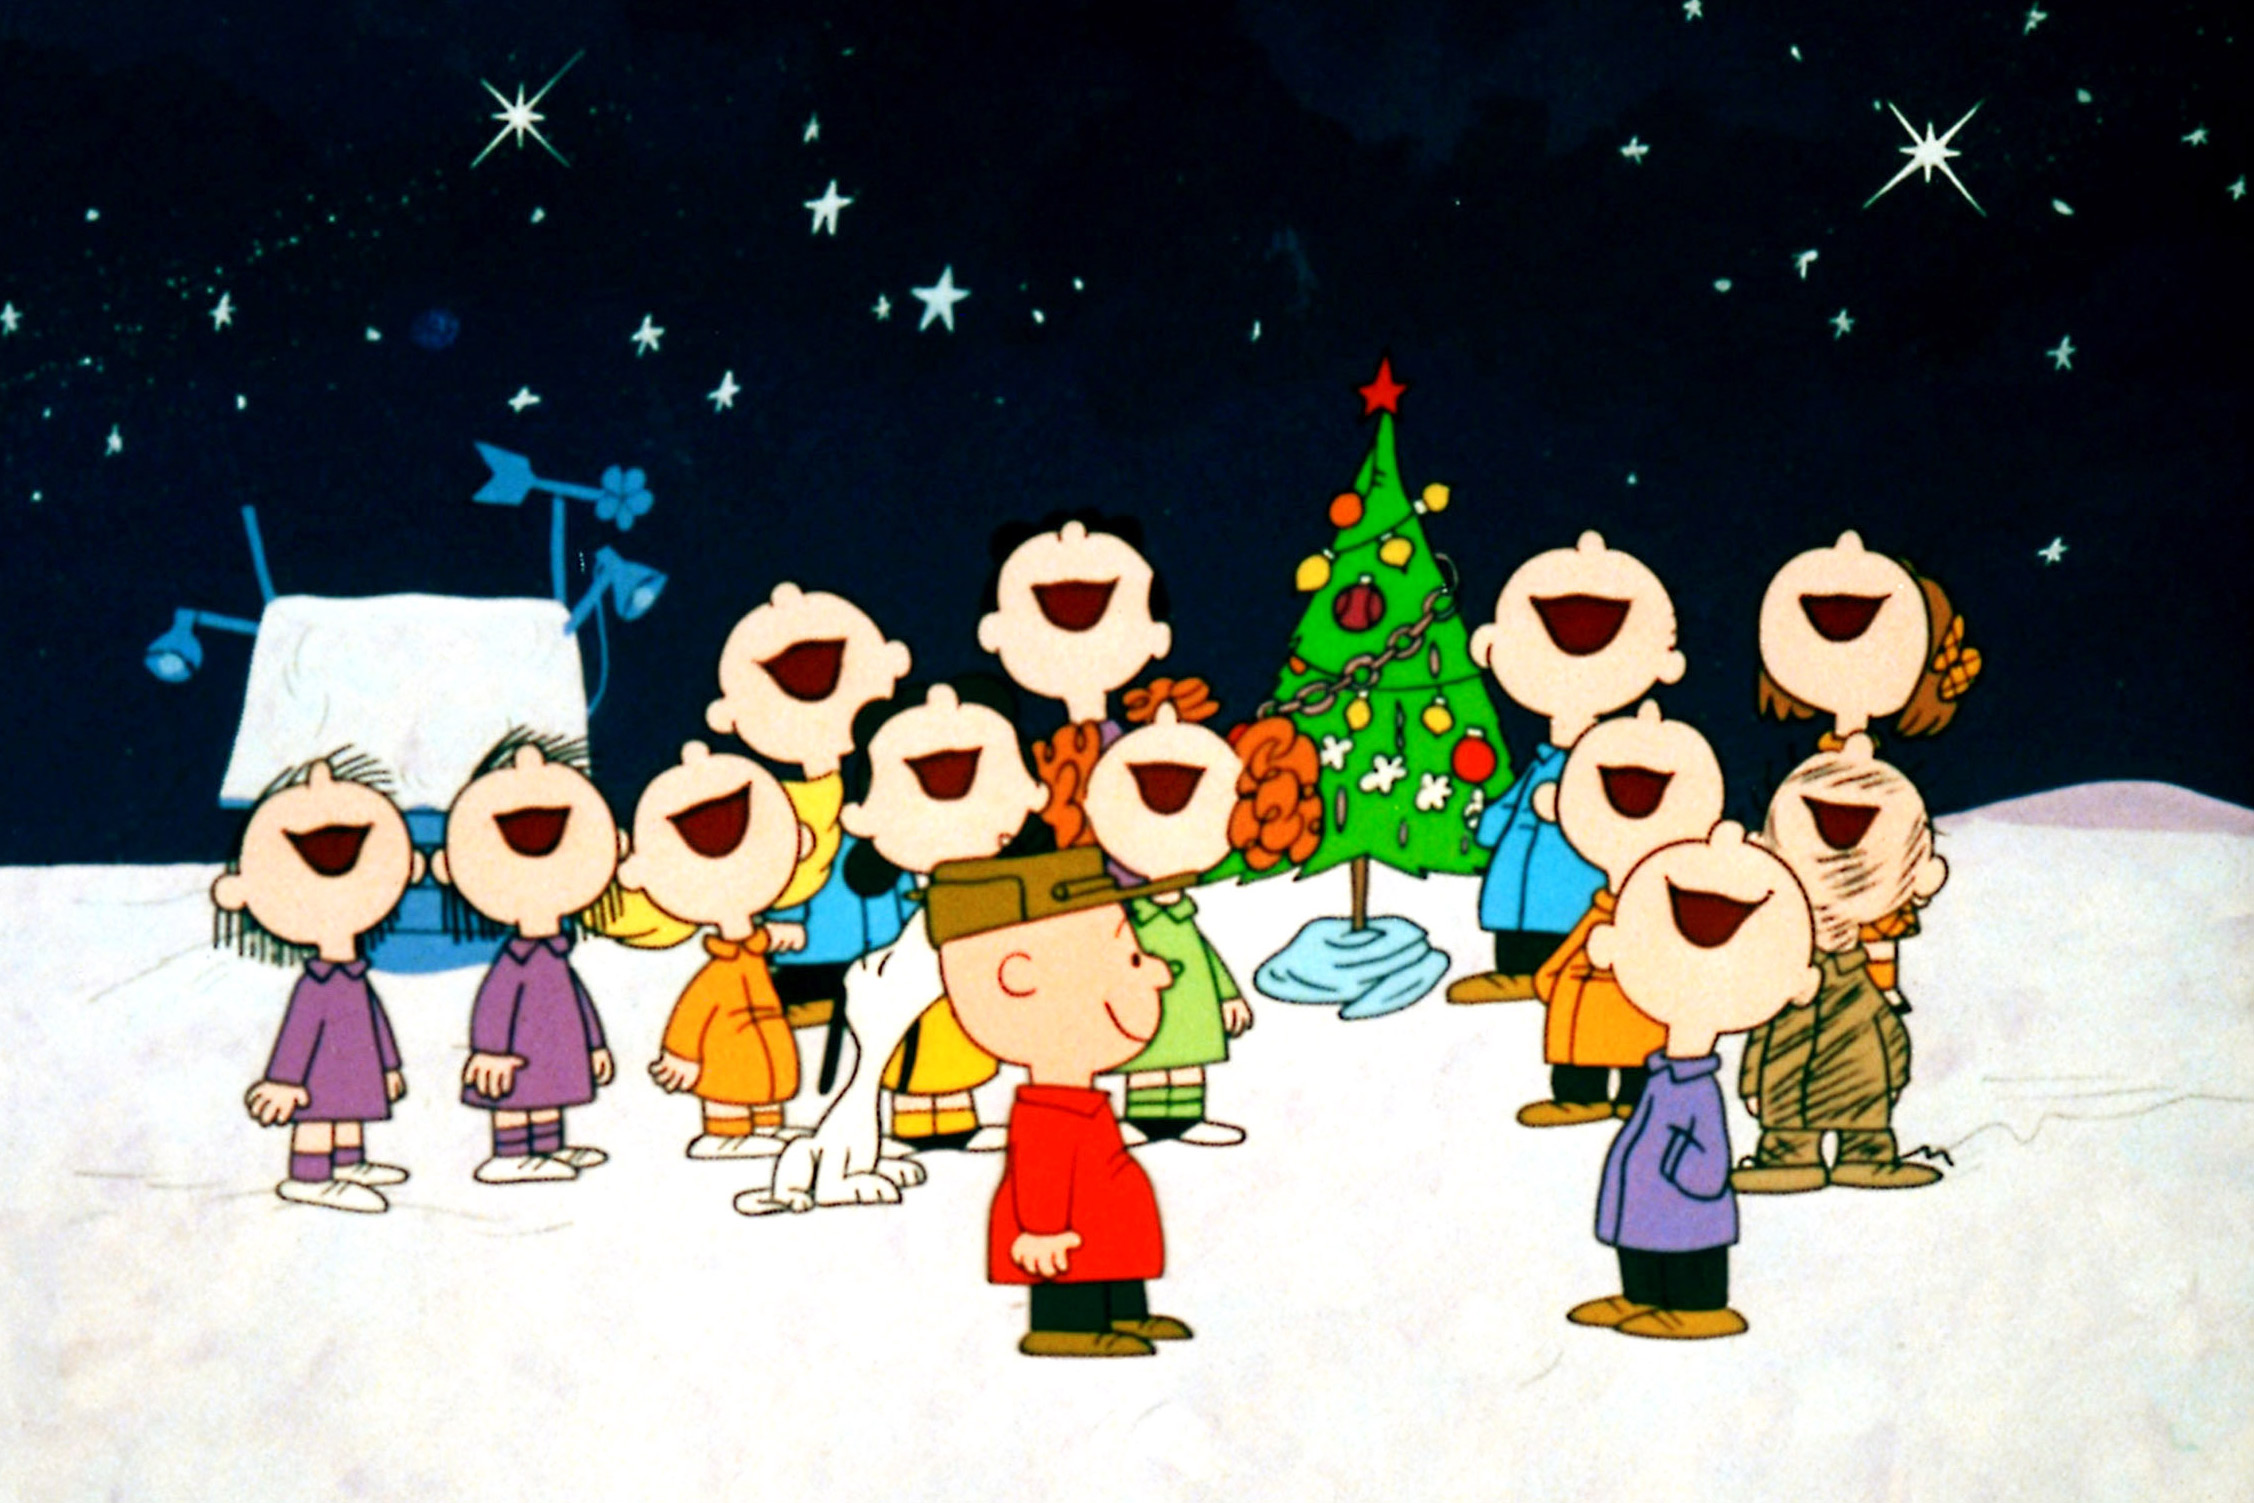 Lee Mendelson, 'Peanuts' Producer and 'Christmas Time Is Here' Co-Writer, Dead at 86 - EpicNews